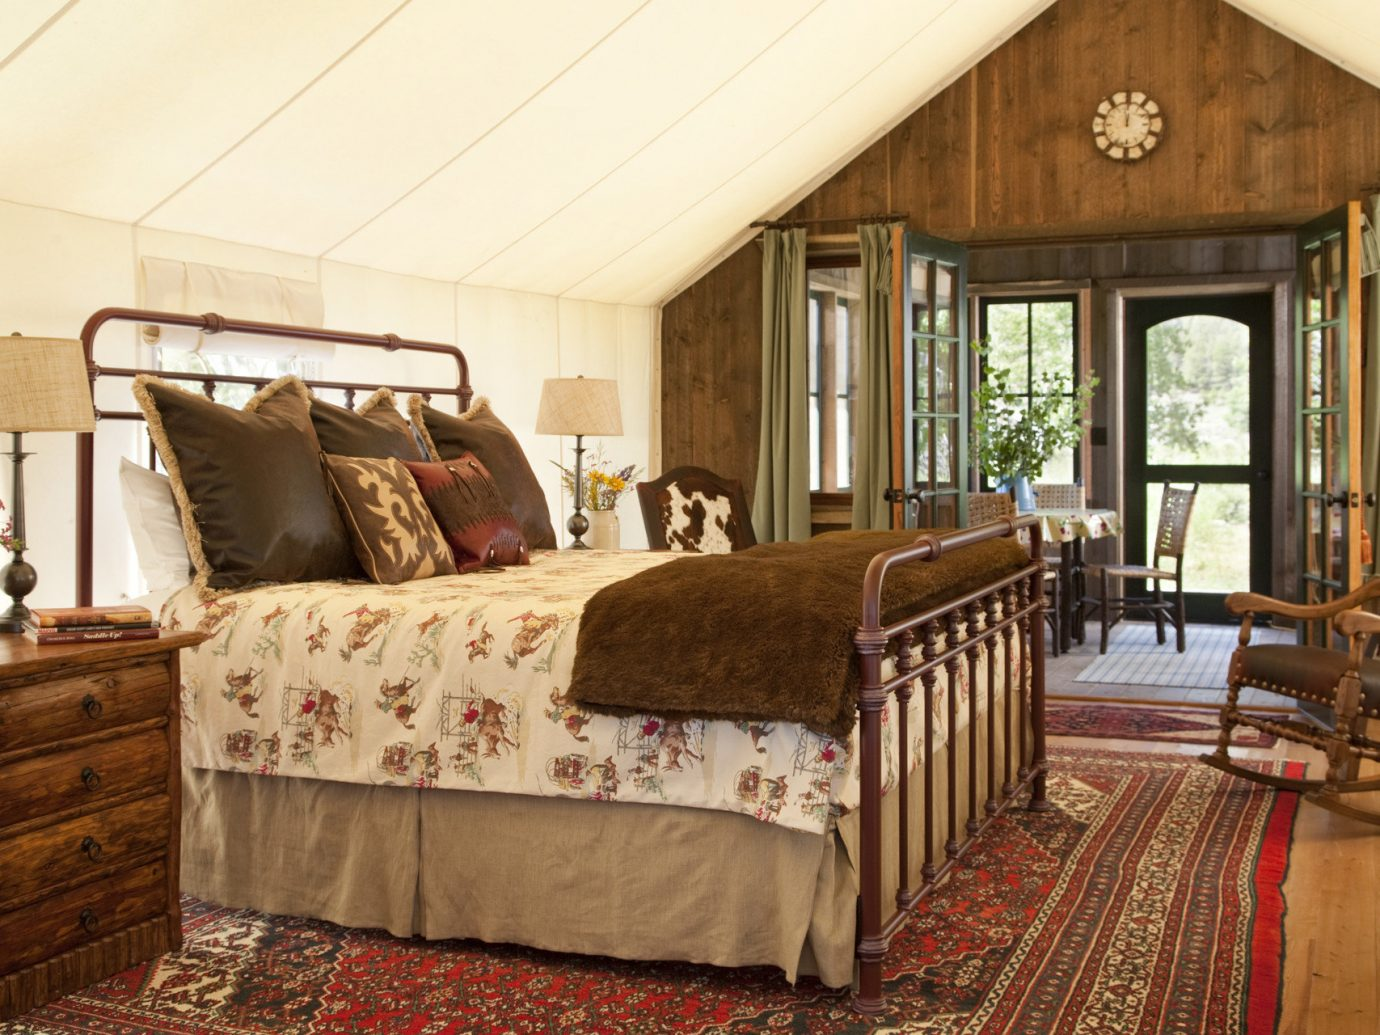 All-Inclusive Resorts Glamping Hotels Montana Outdoors + Adventure Romance Trip Ideas indoor room floor sofa wall Living property Bedroom home estate cottage living room hardwood farmhouse real estate interior design porch log cabin bed furniture bed sheet decorated